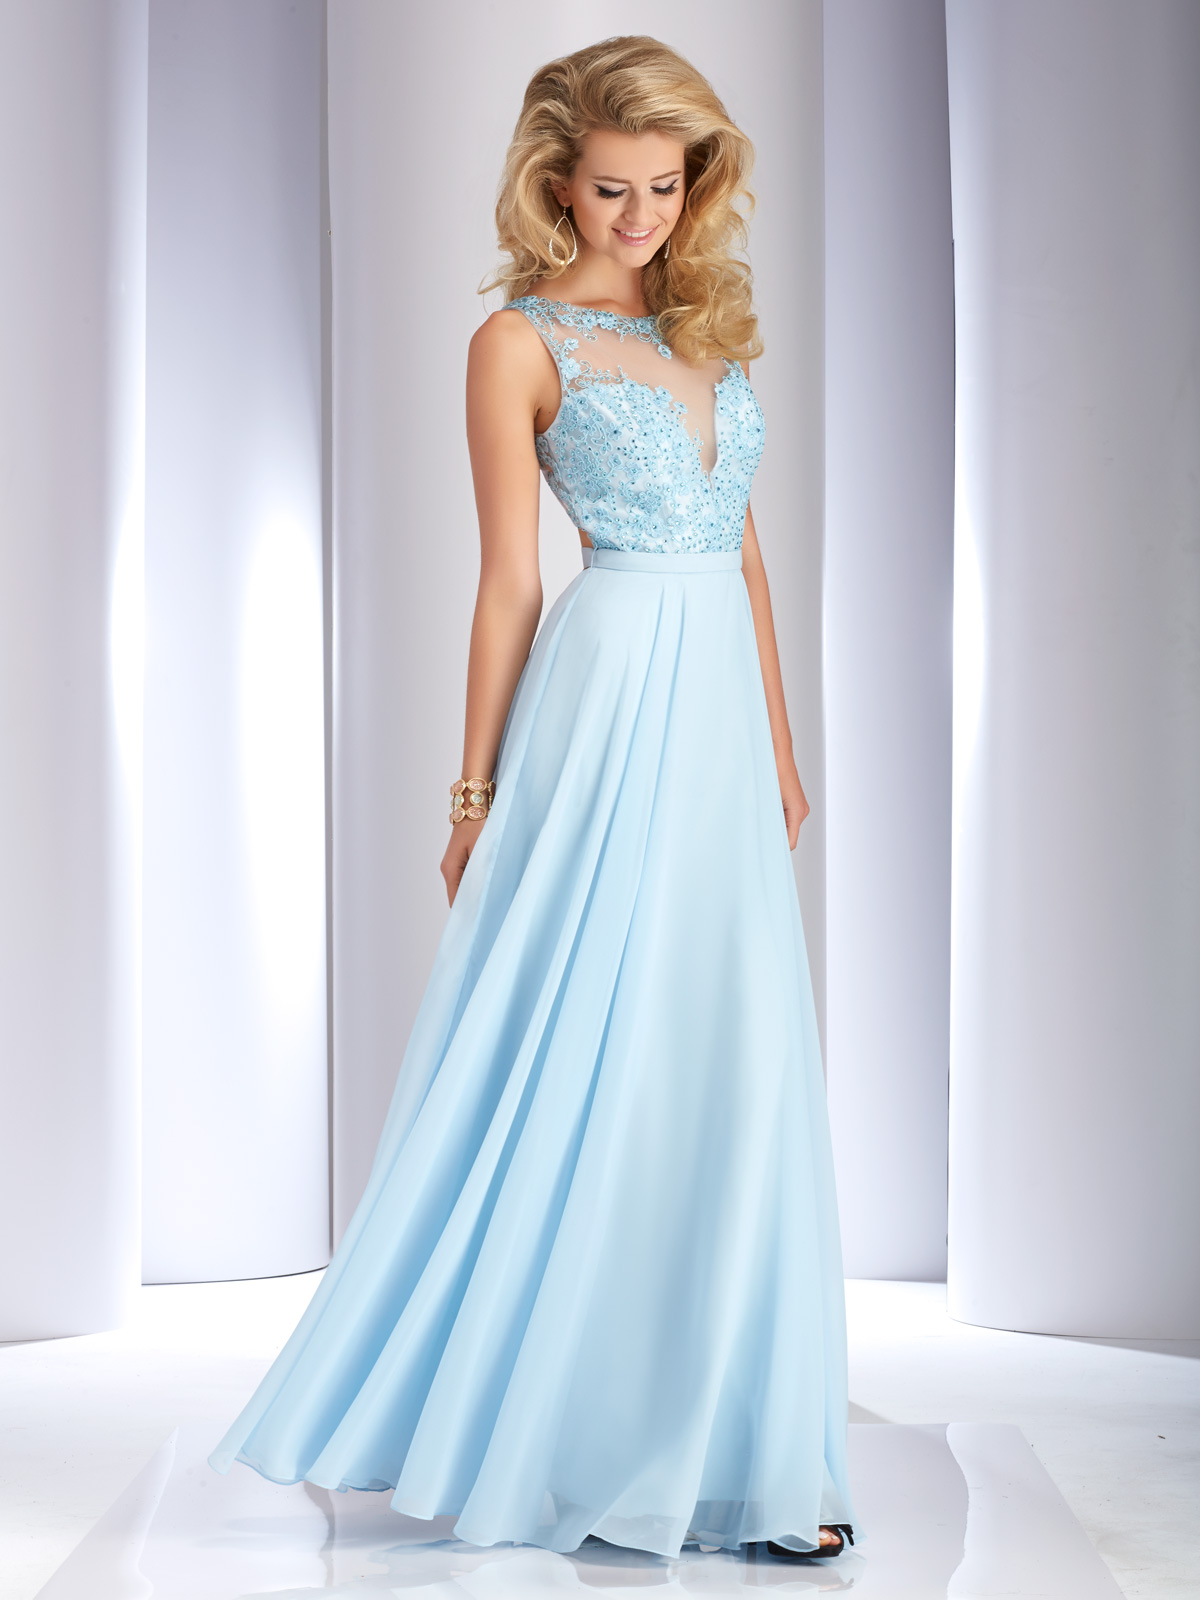 Clarisse 2768 Prom Dress | Promgirl.net